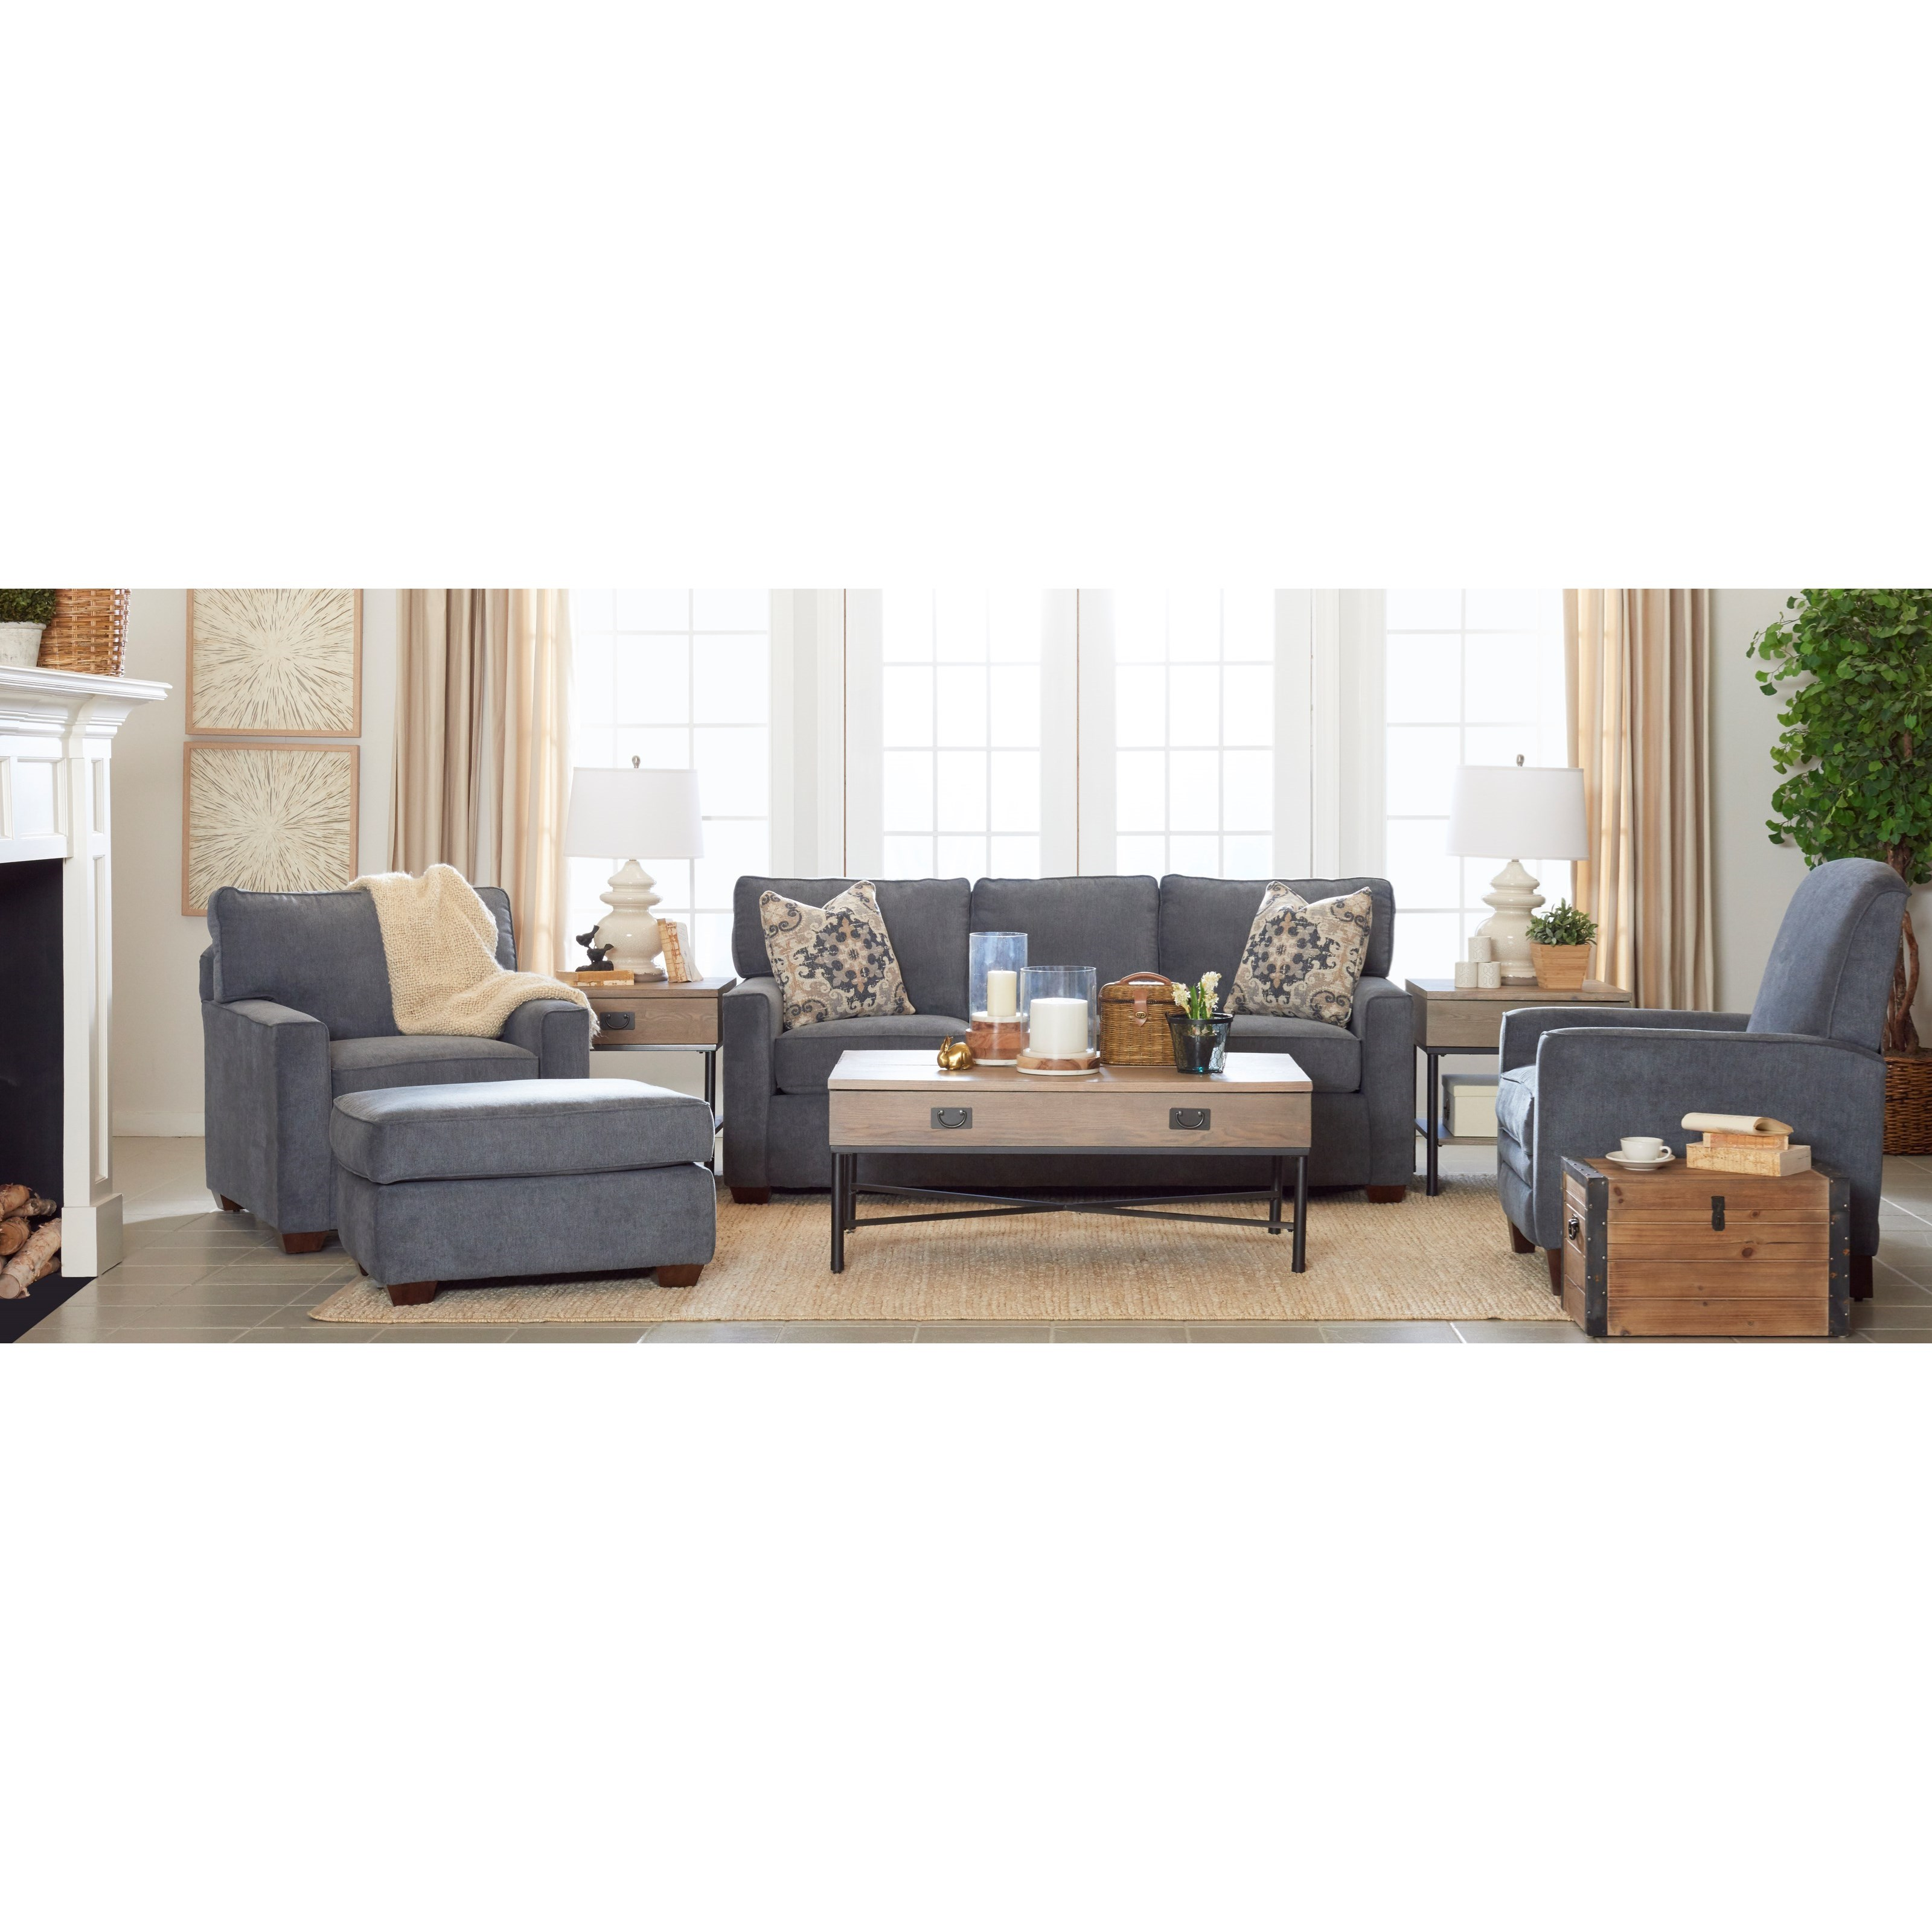 Pantego Living Room Group by Klaussner at Northeast Factory Direct